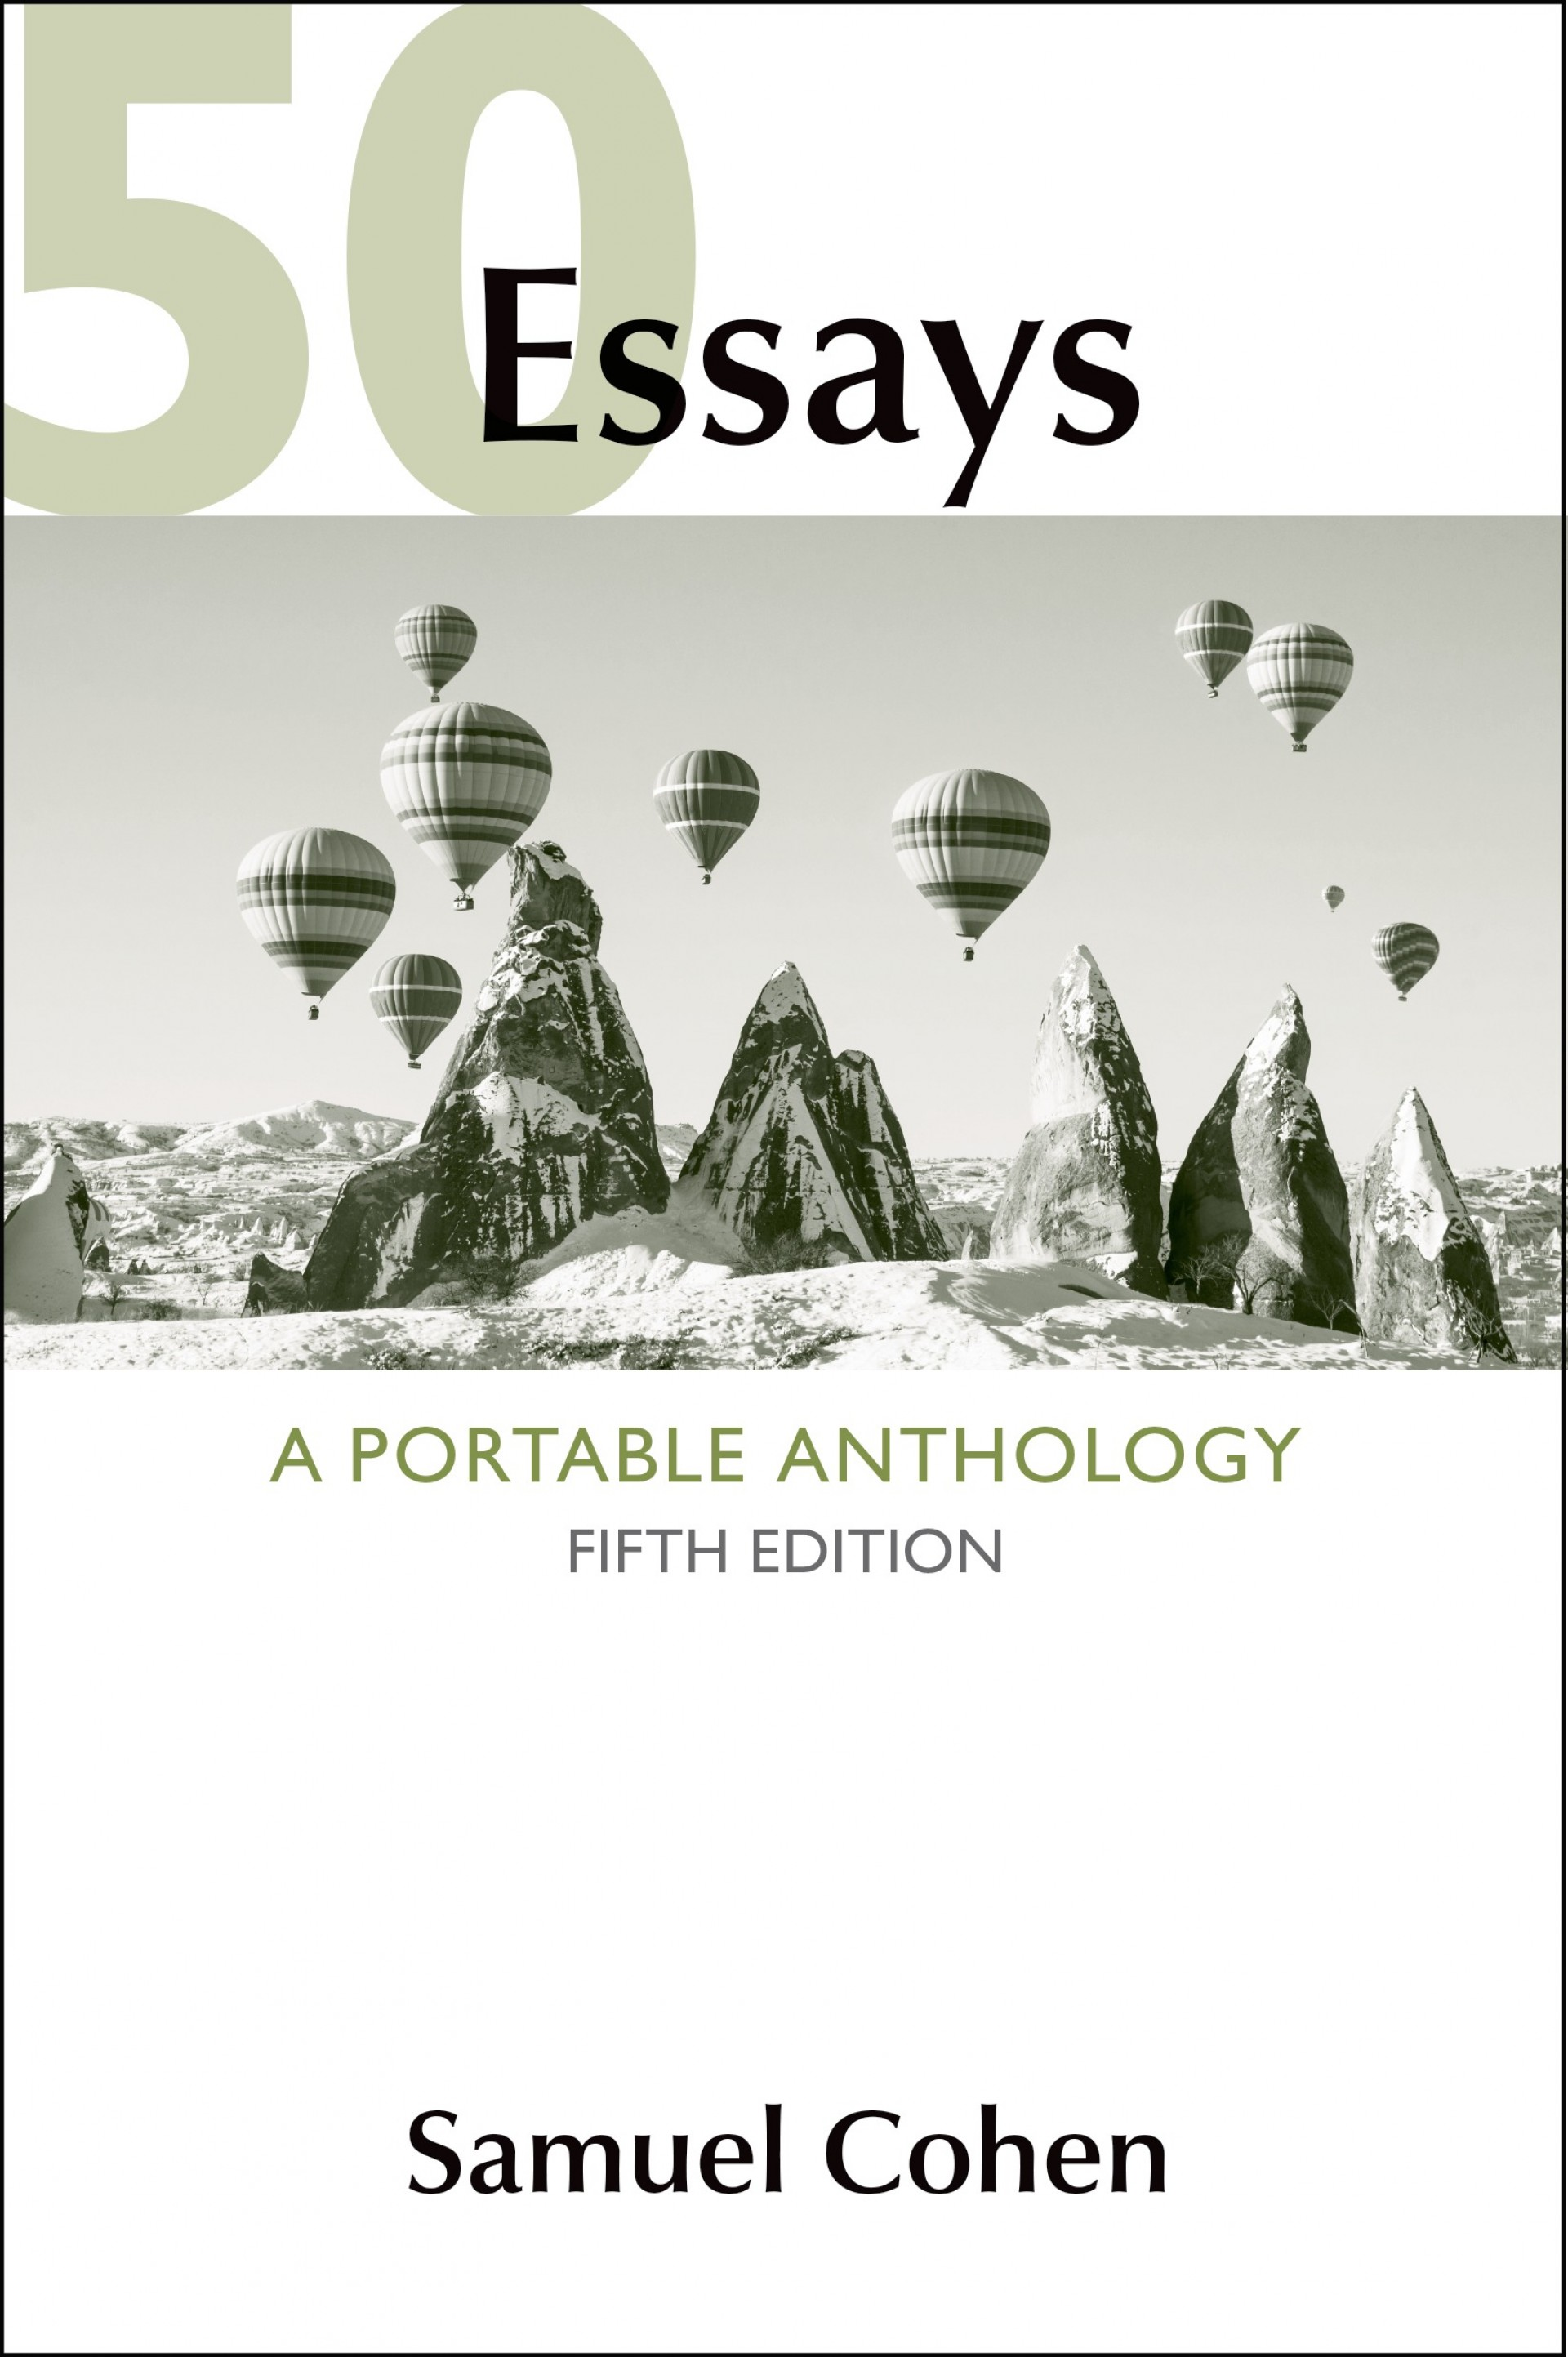 008 Essays Table Of Contents Essay Example Best 50 A Portable Anthology 4th Edition Great 1920